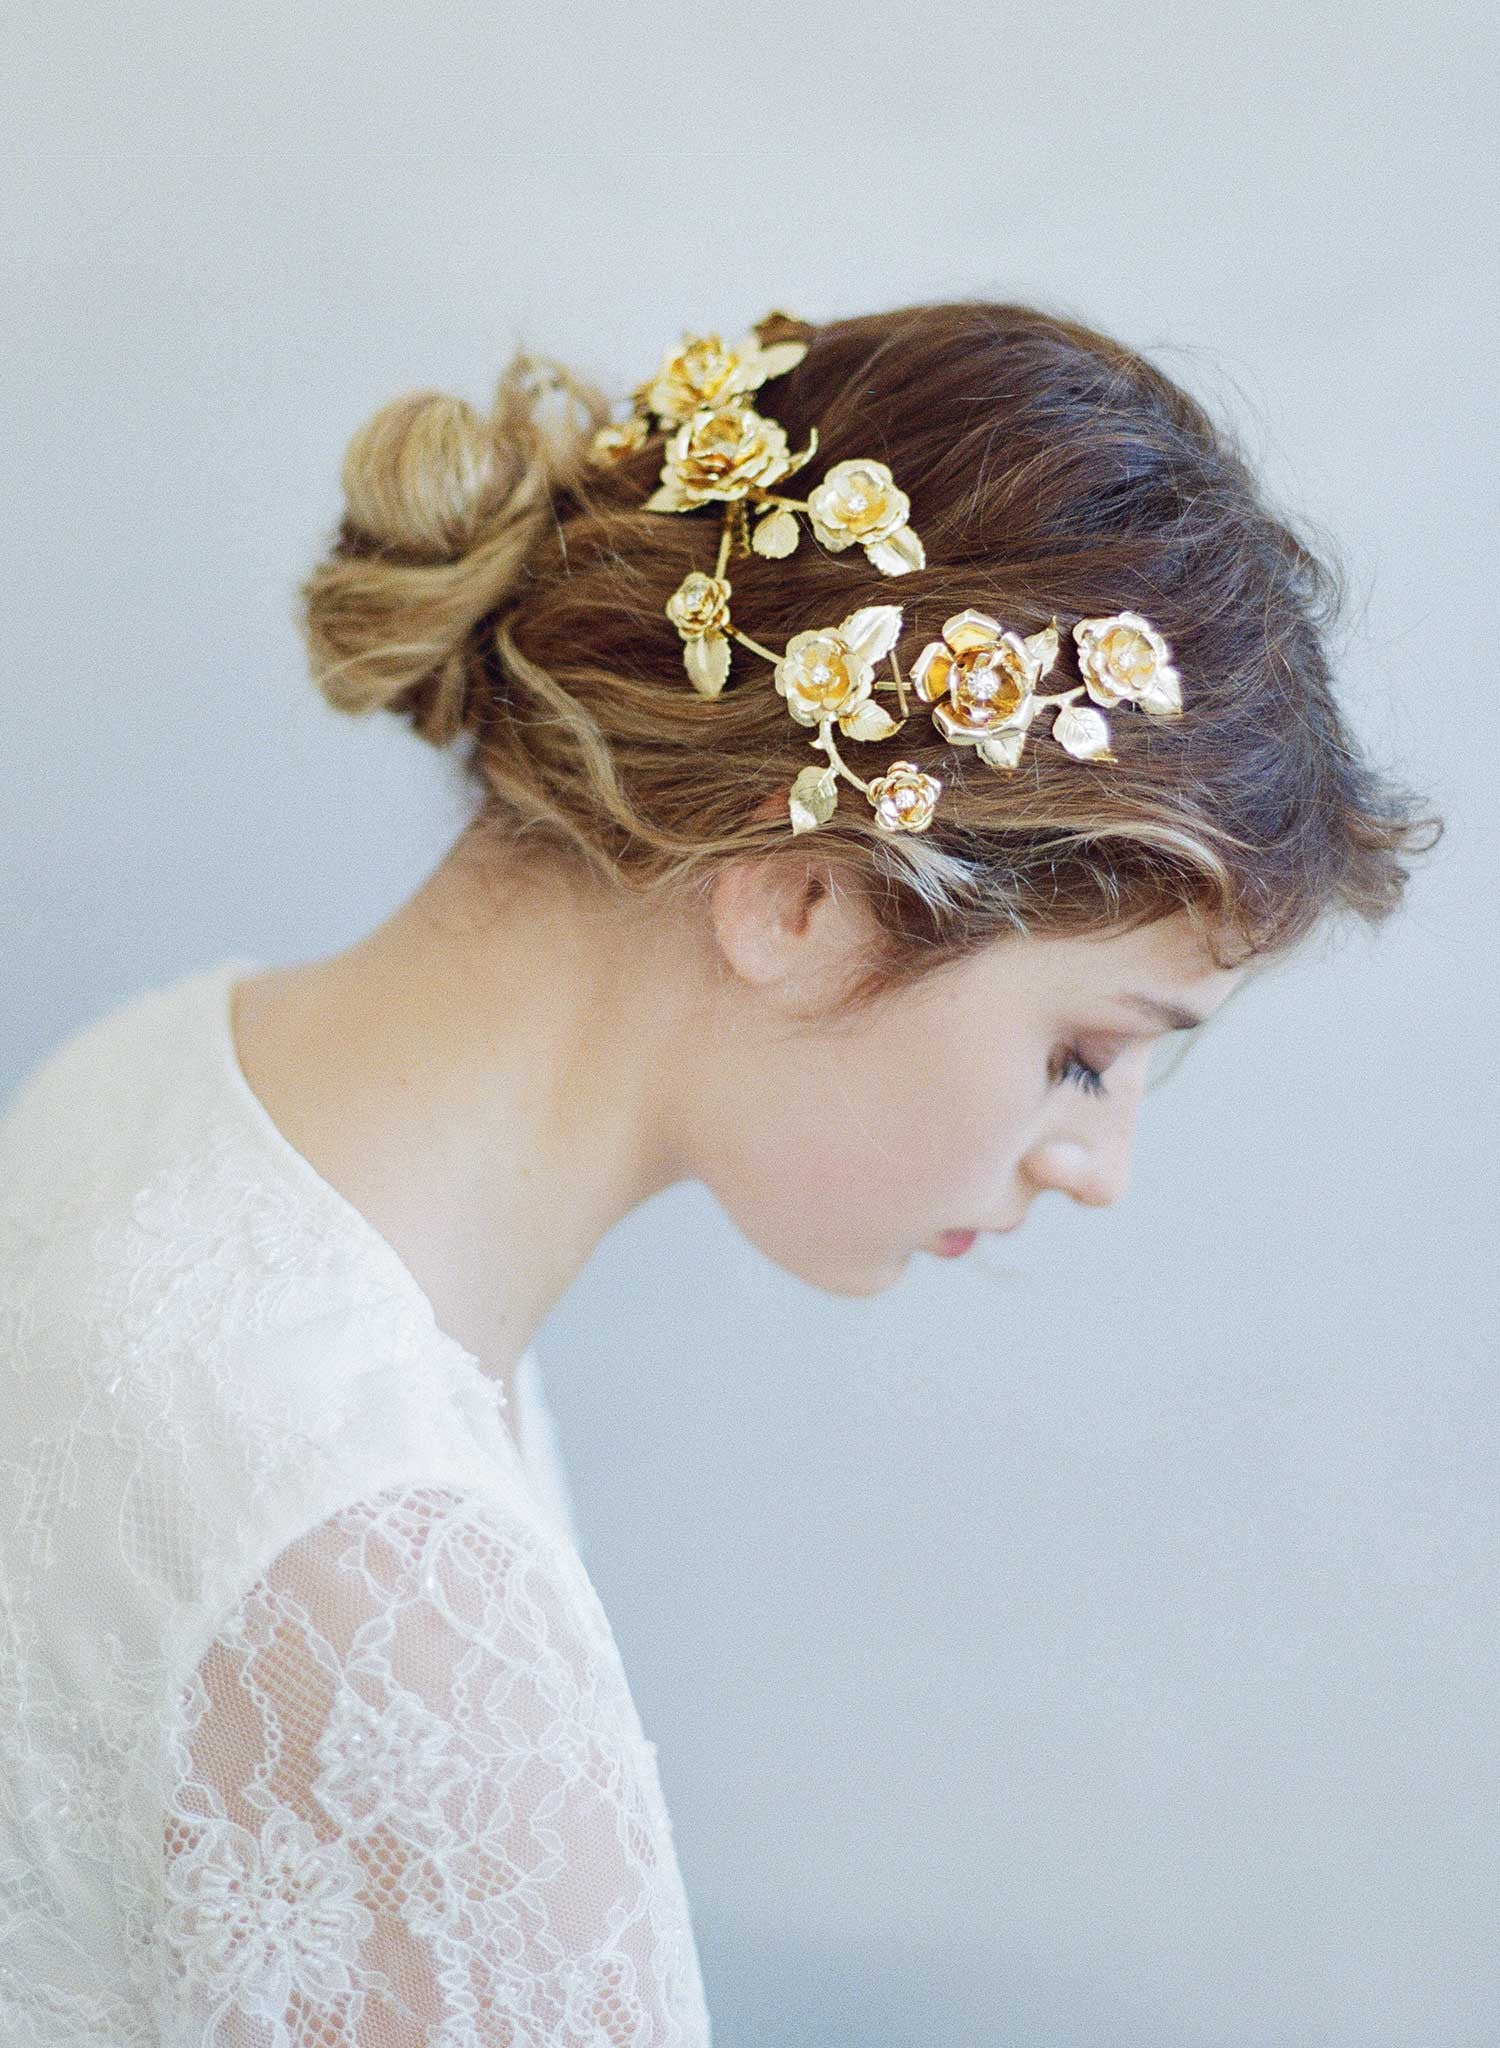 Climbing rose vine and leaf headpiece - Style #762